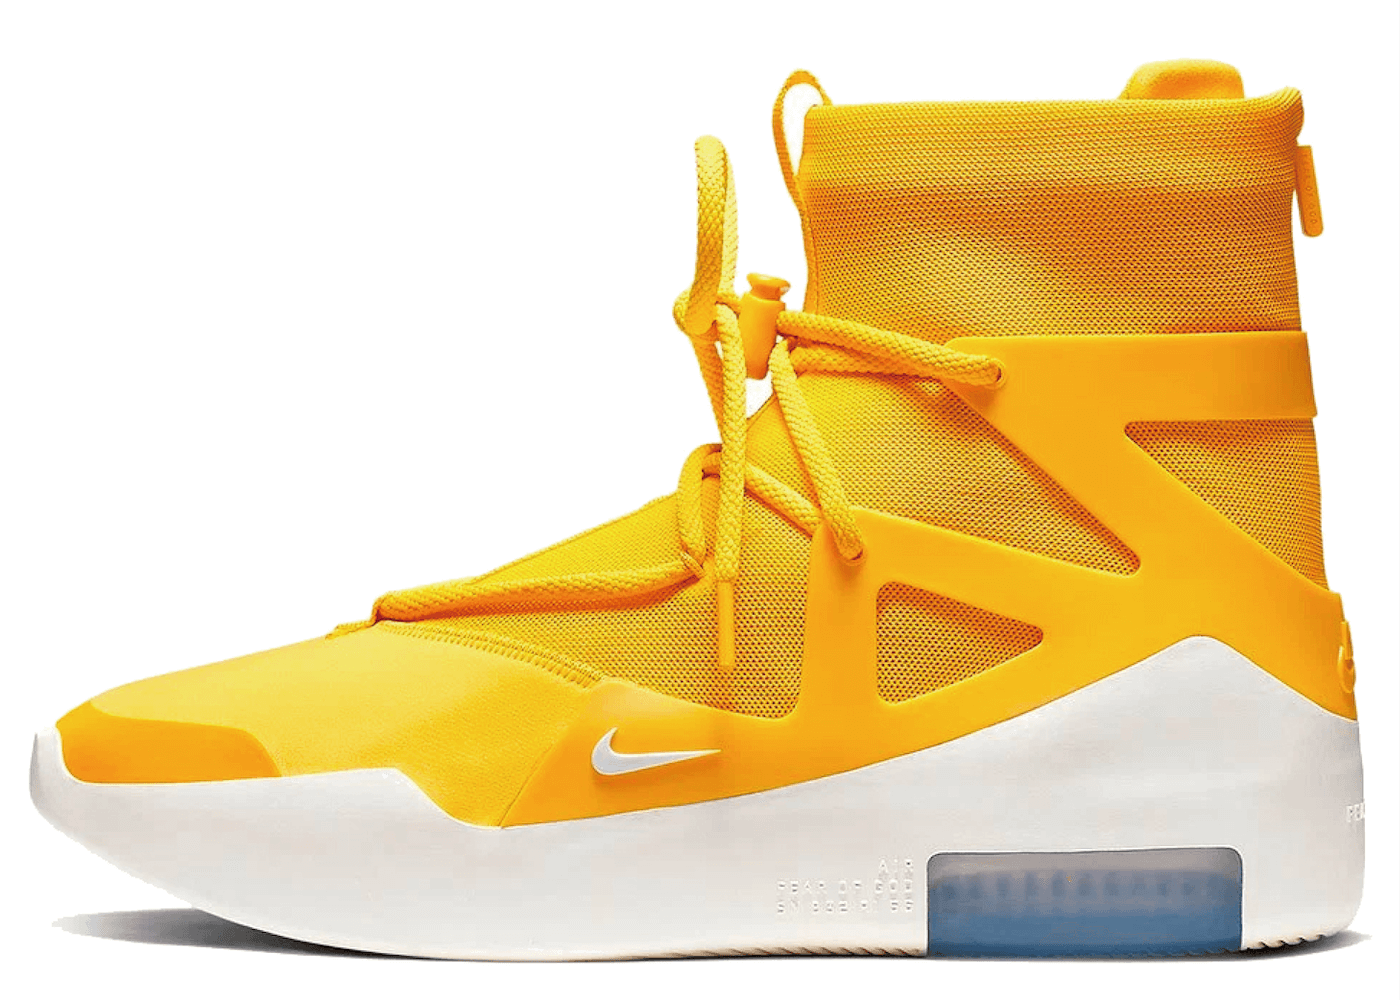 Nike Air Fear Of God 1 Yellowを安心売買